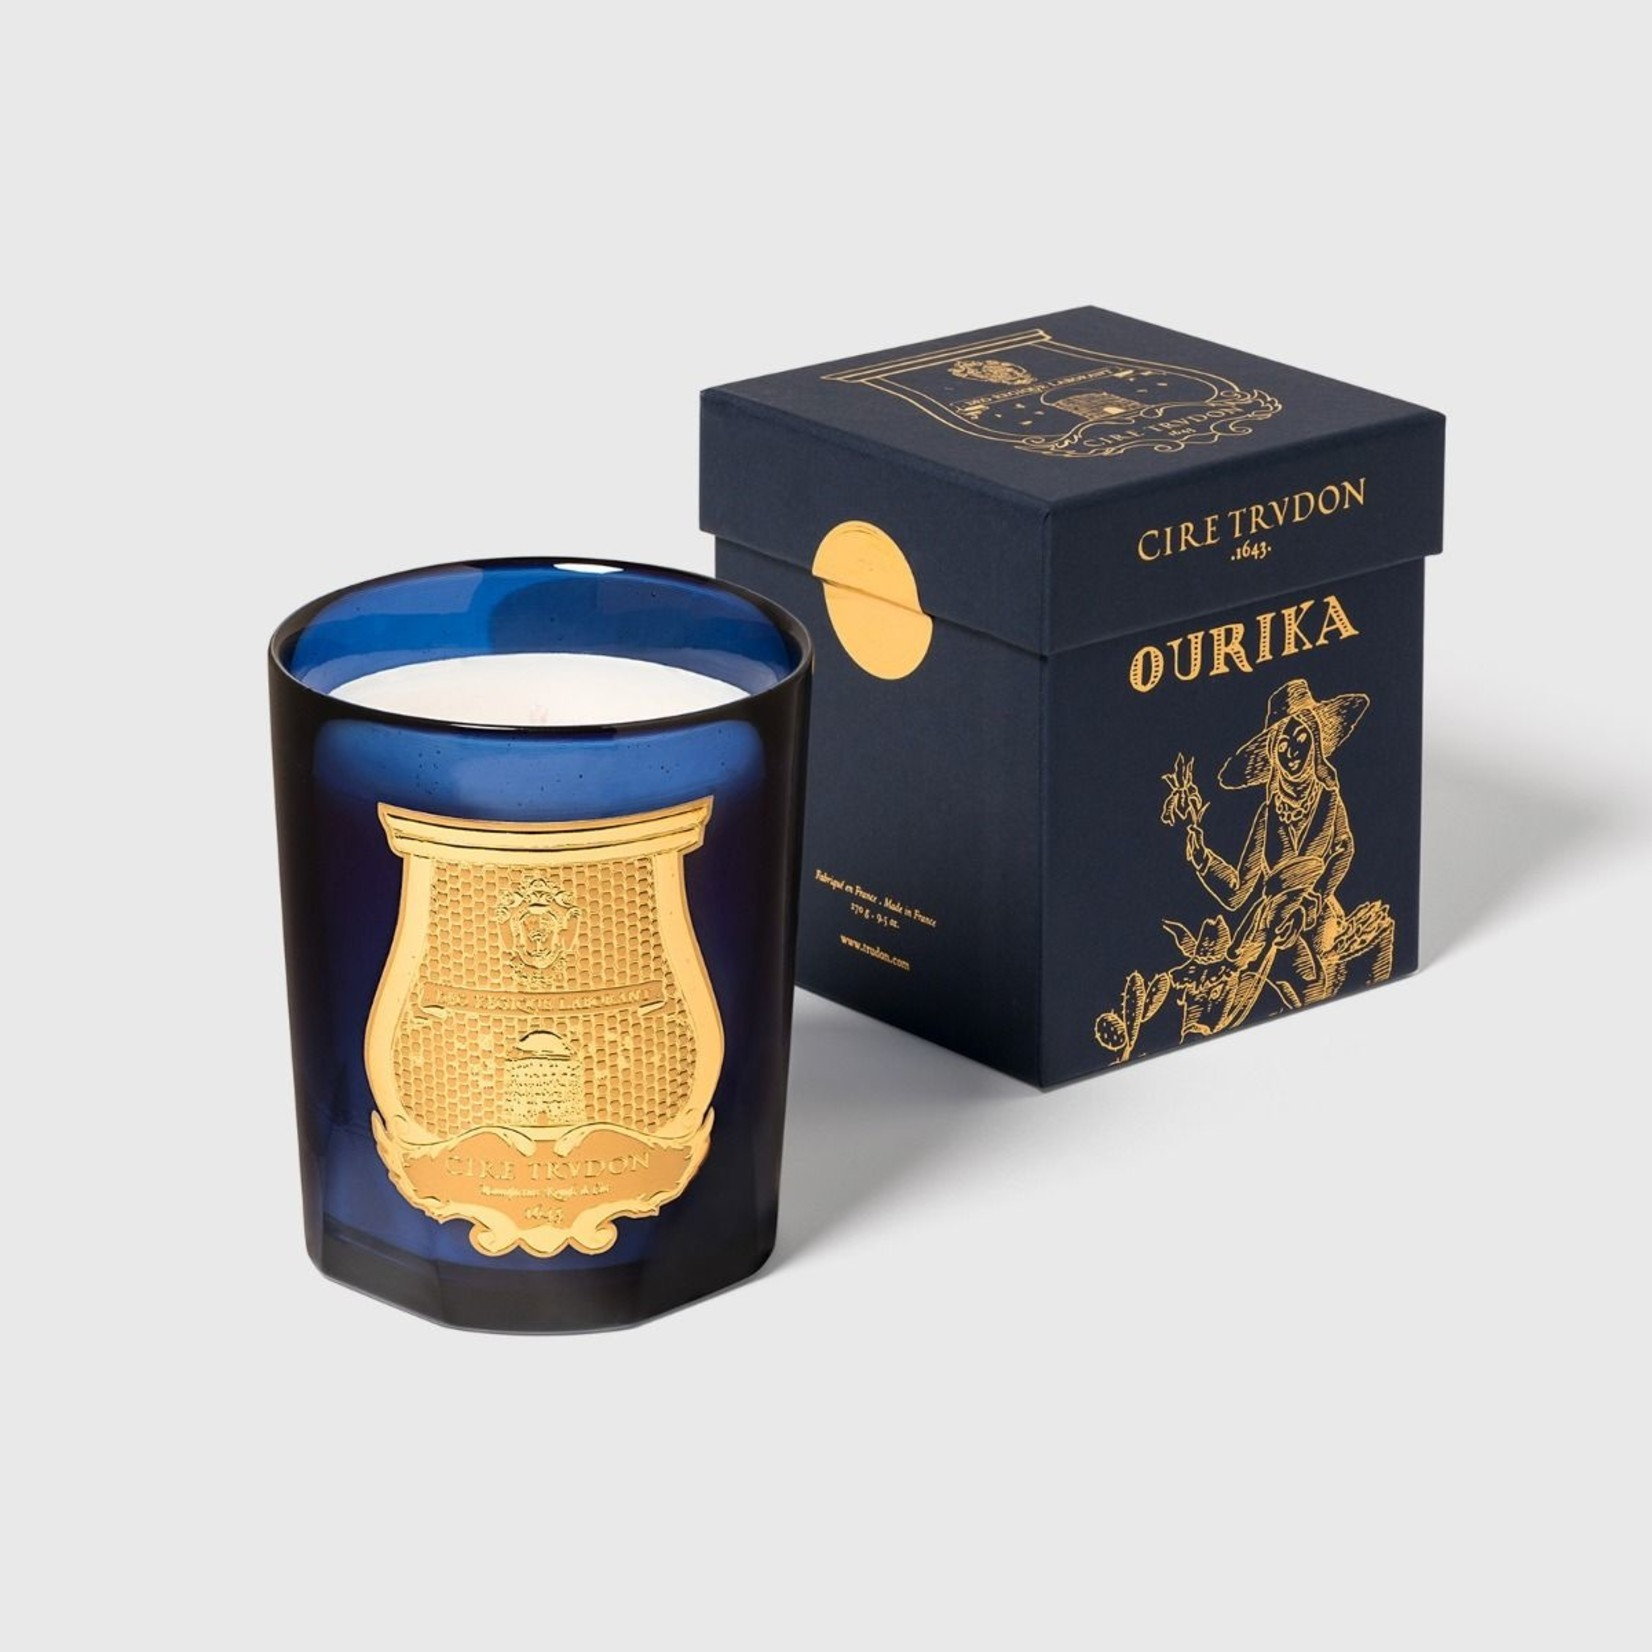 Cire Trudon Ourika Candle — Classic